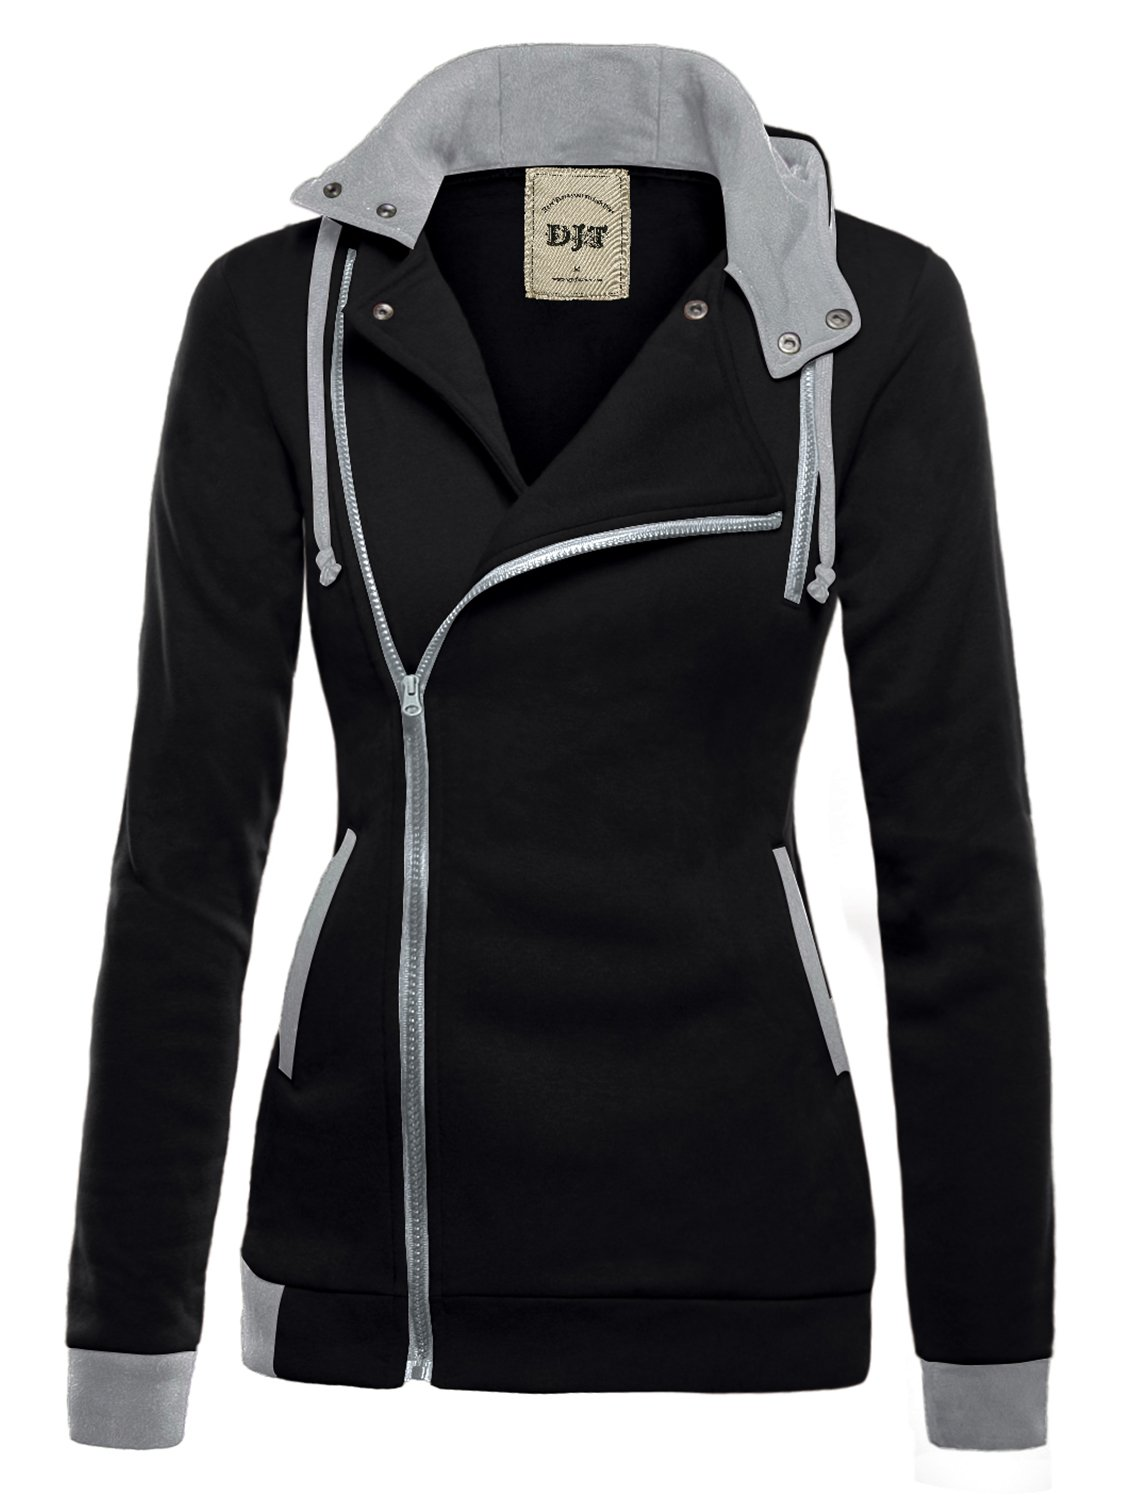 DJT Womens Oblique Zipper Slim Fit Hoodie Jacket Medium Black